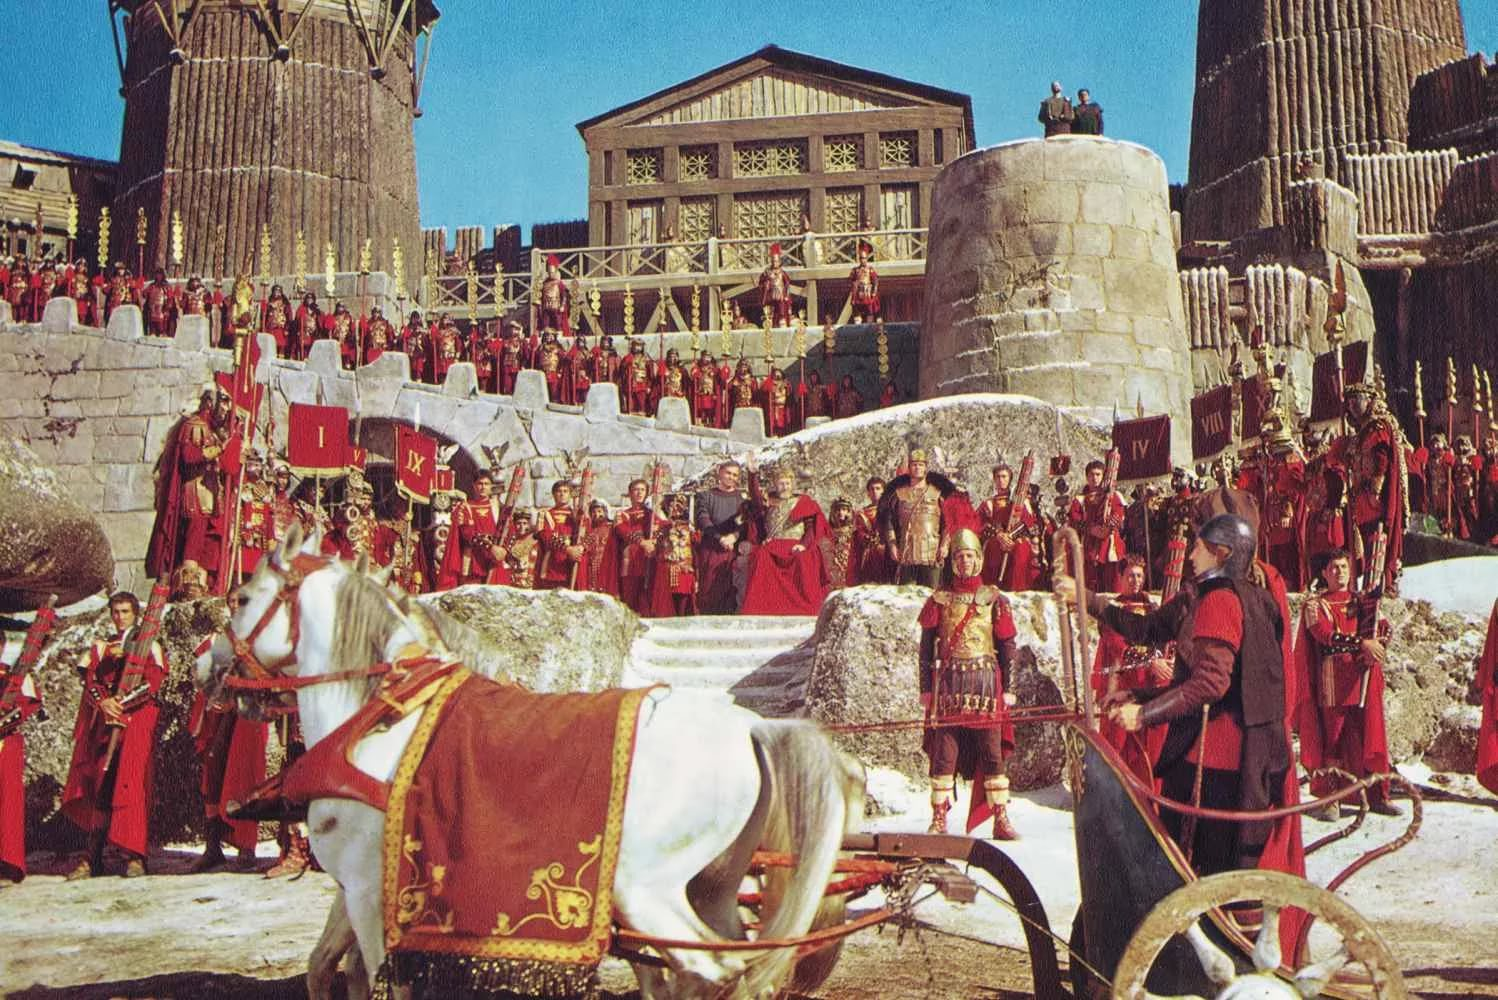 a history of rome an ancient city and julius caesar Powerful generals such as julius caesar conquered huge areas of land  history  ancient rome  the roman empire  the city of rome was the heart of the.